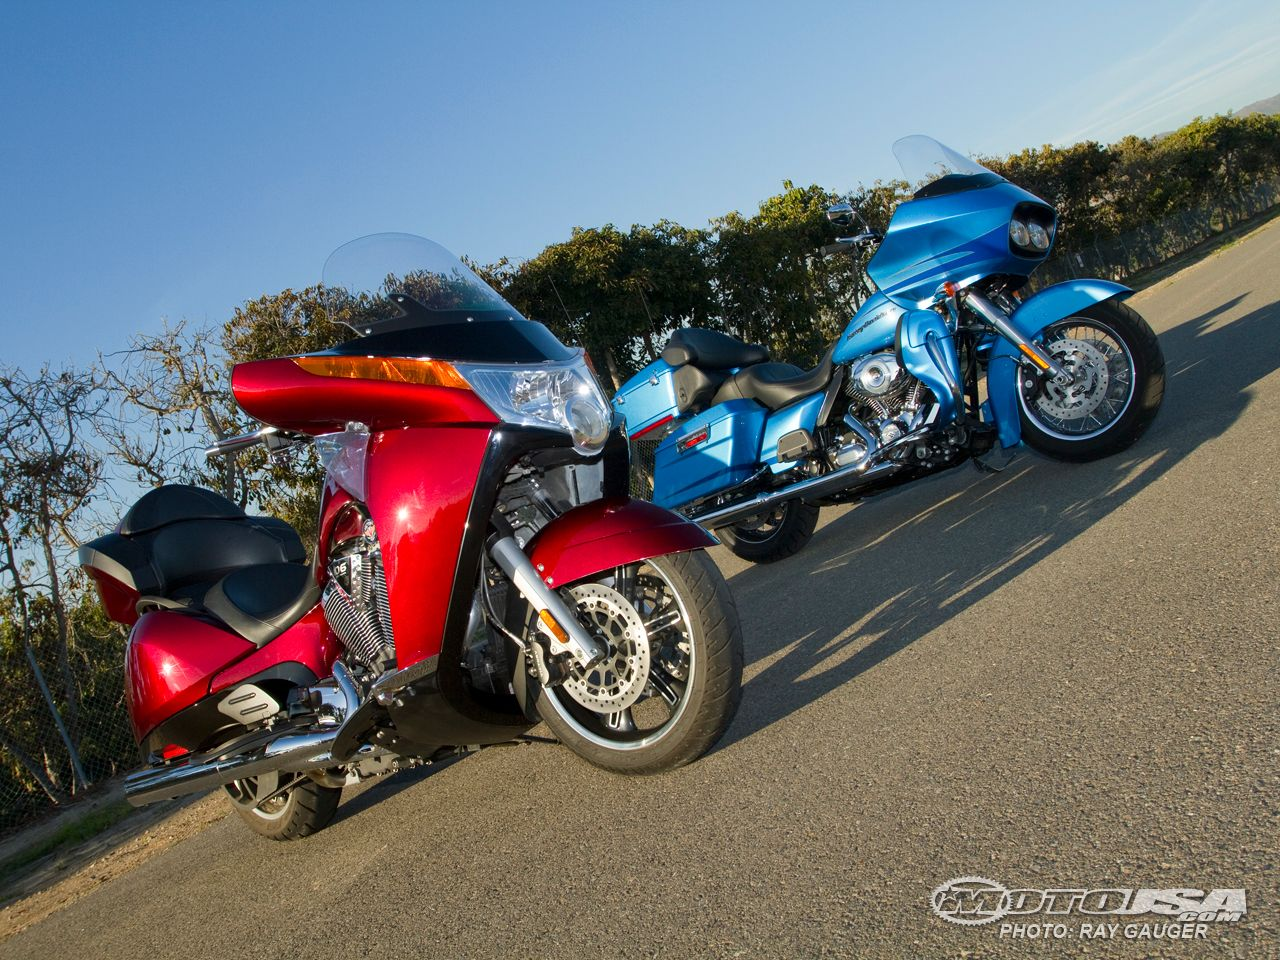 2011 Victory Vision Tour vs Road Glide Ultra